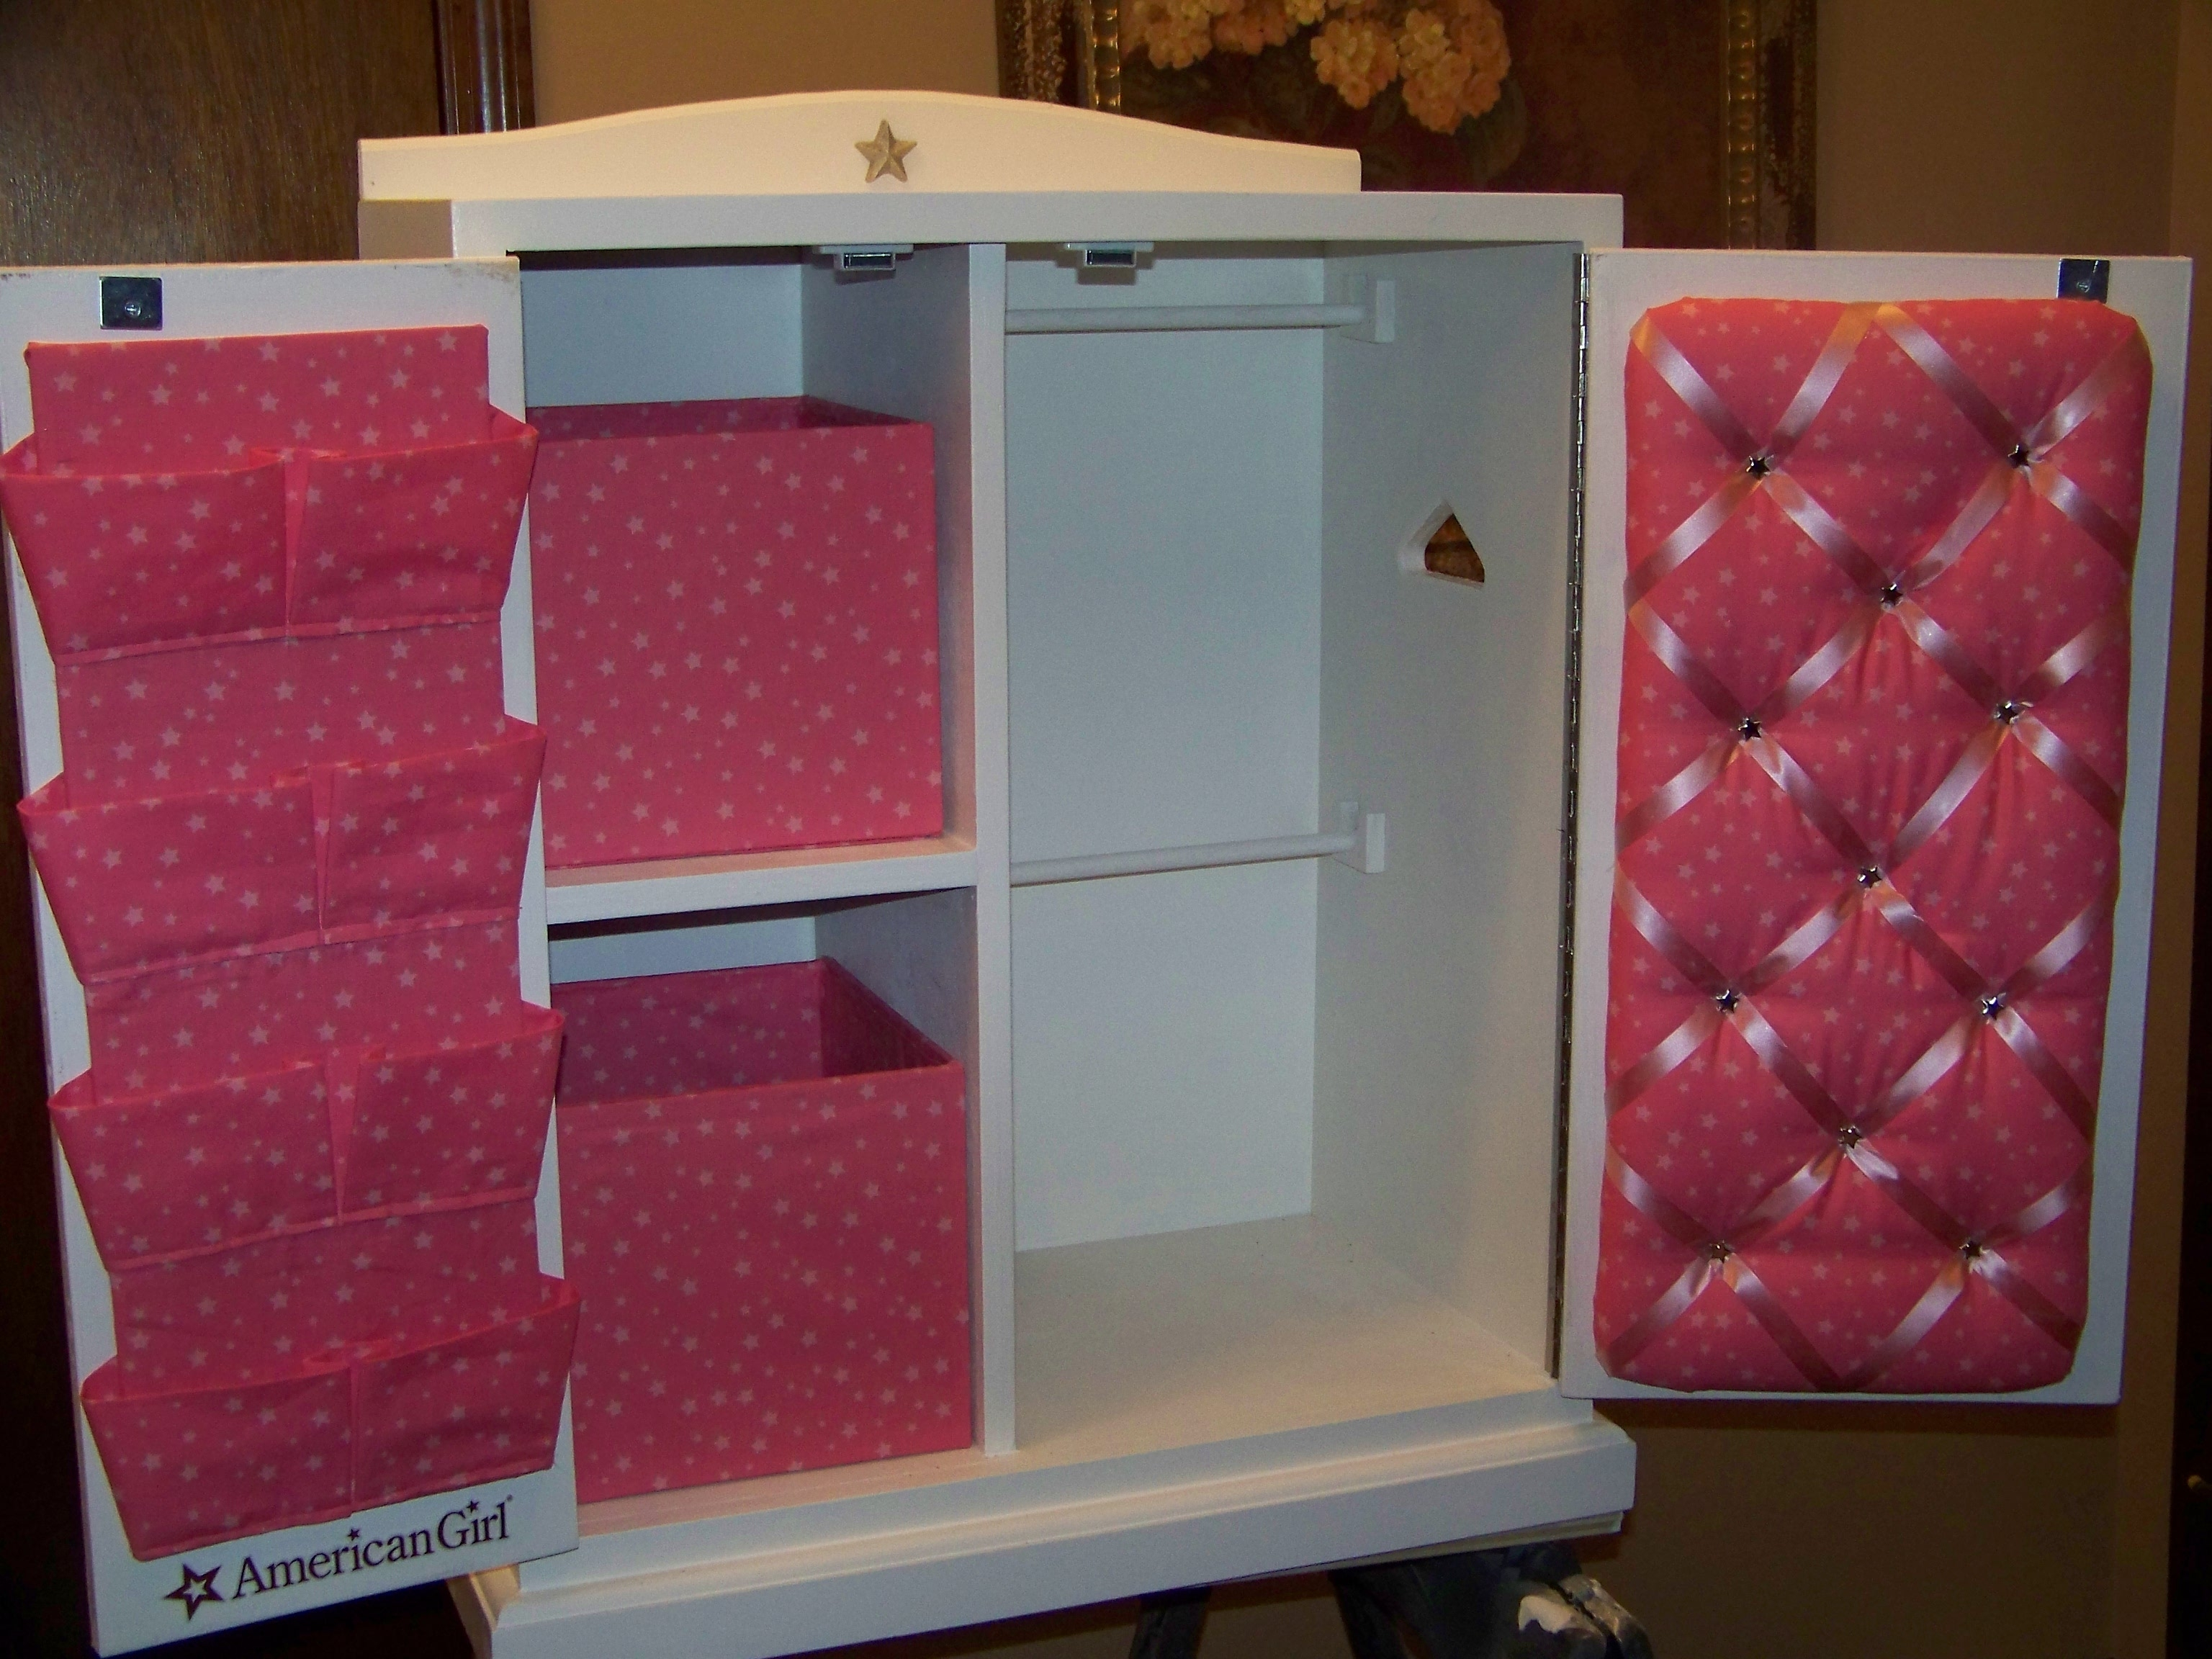 Permalink to American Girl Doll Storage Cabinet